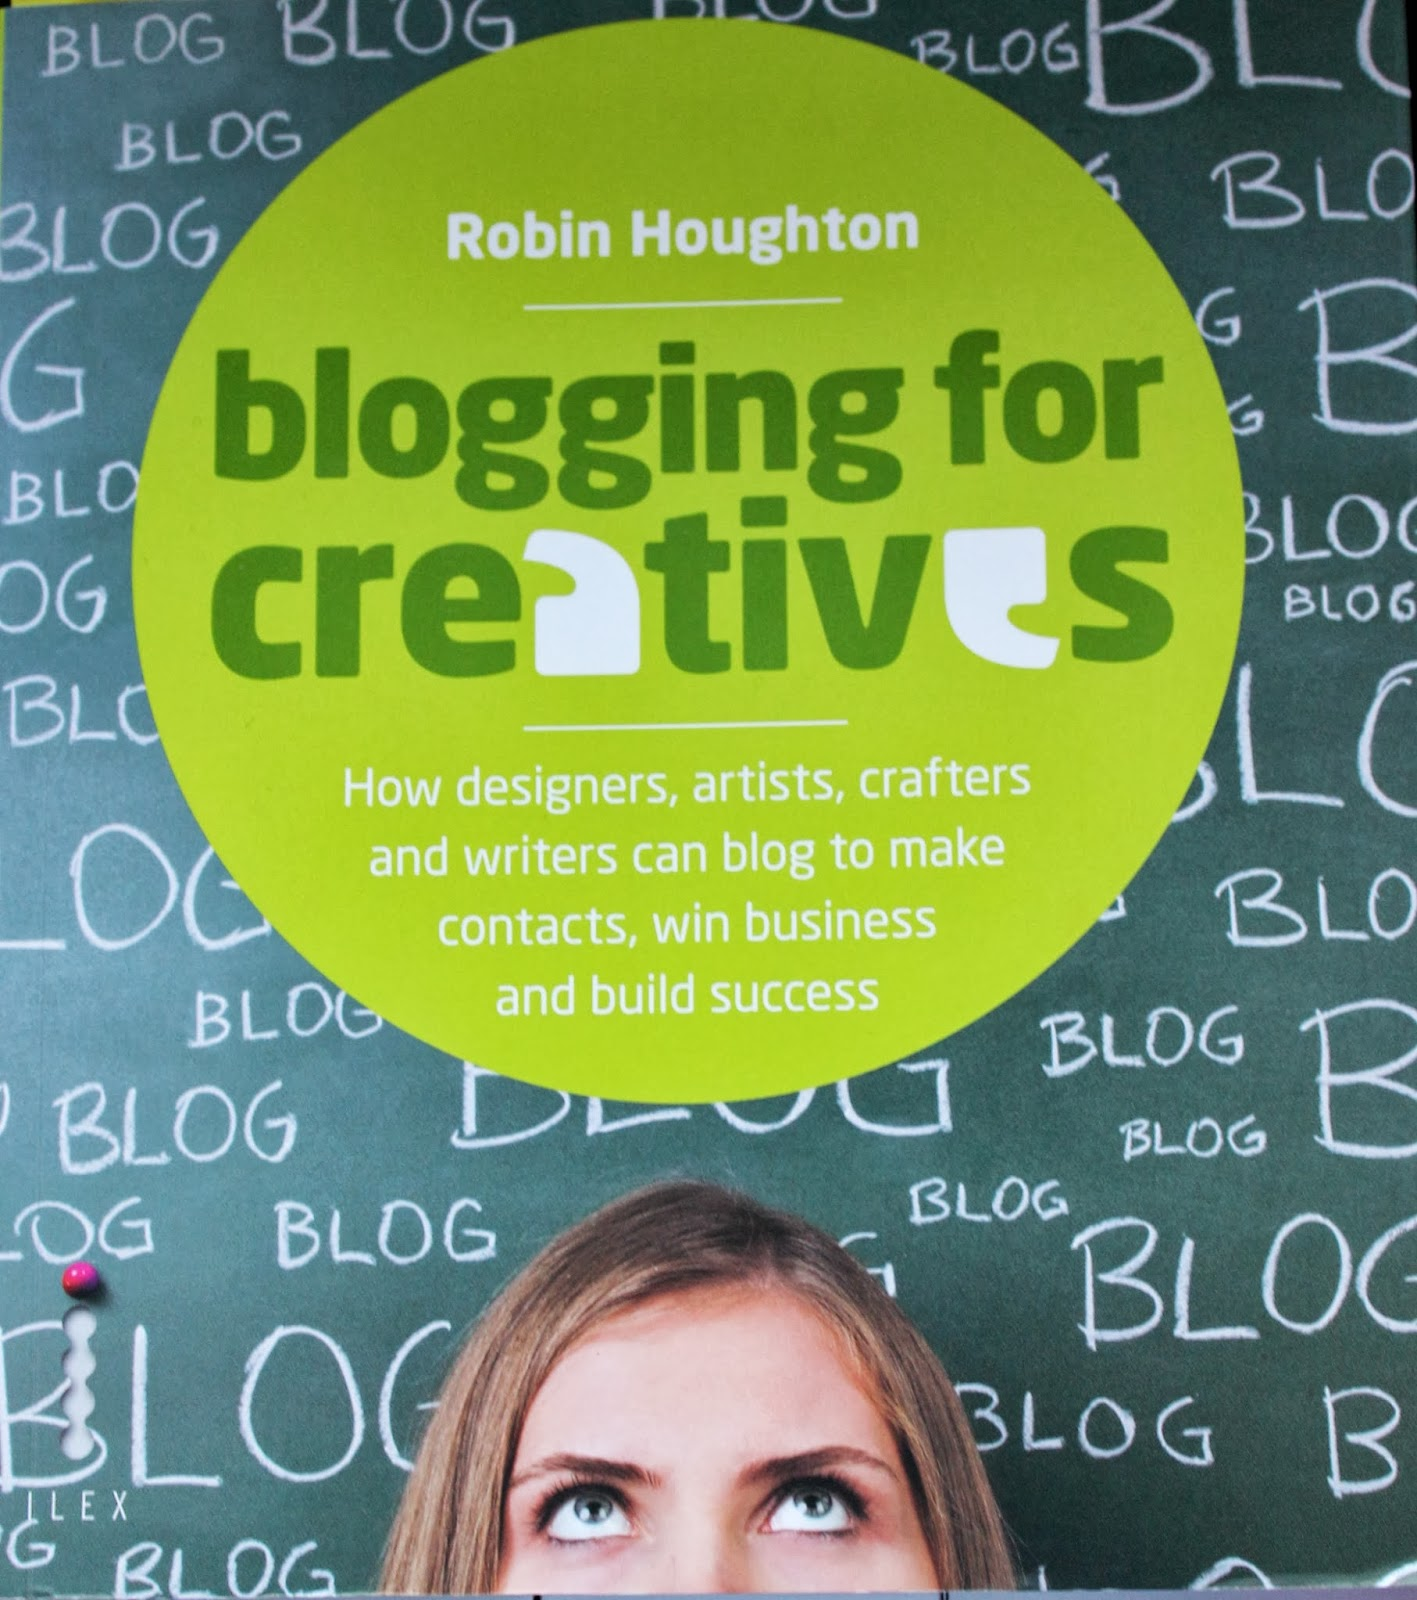 http://fizzijaynemakes.blogspot.co.uk/2014/02/book-review-1-blogging-for-creatives.html